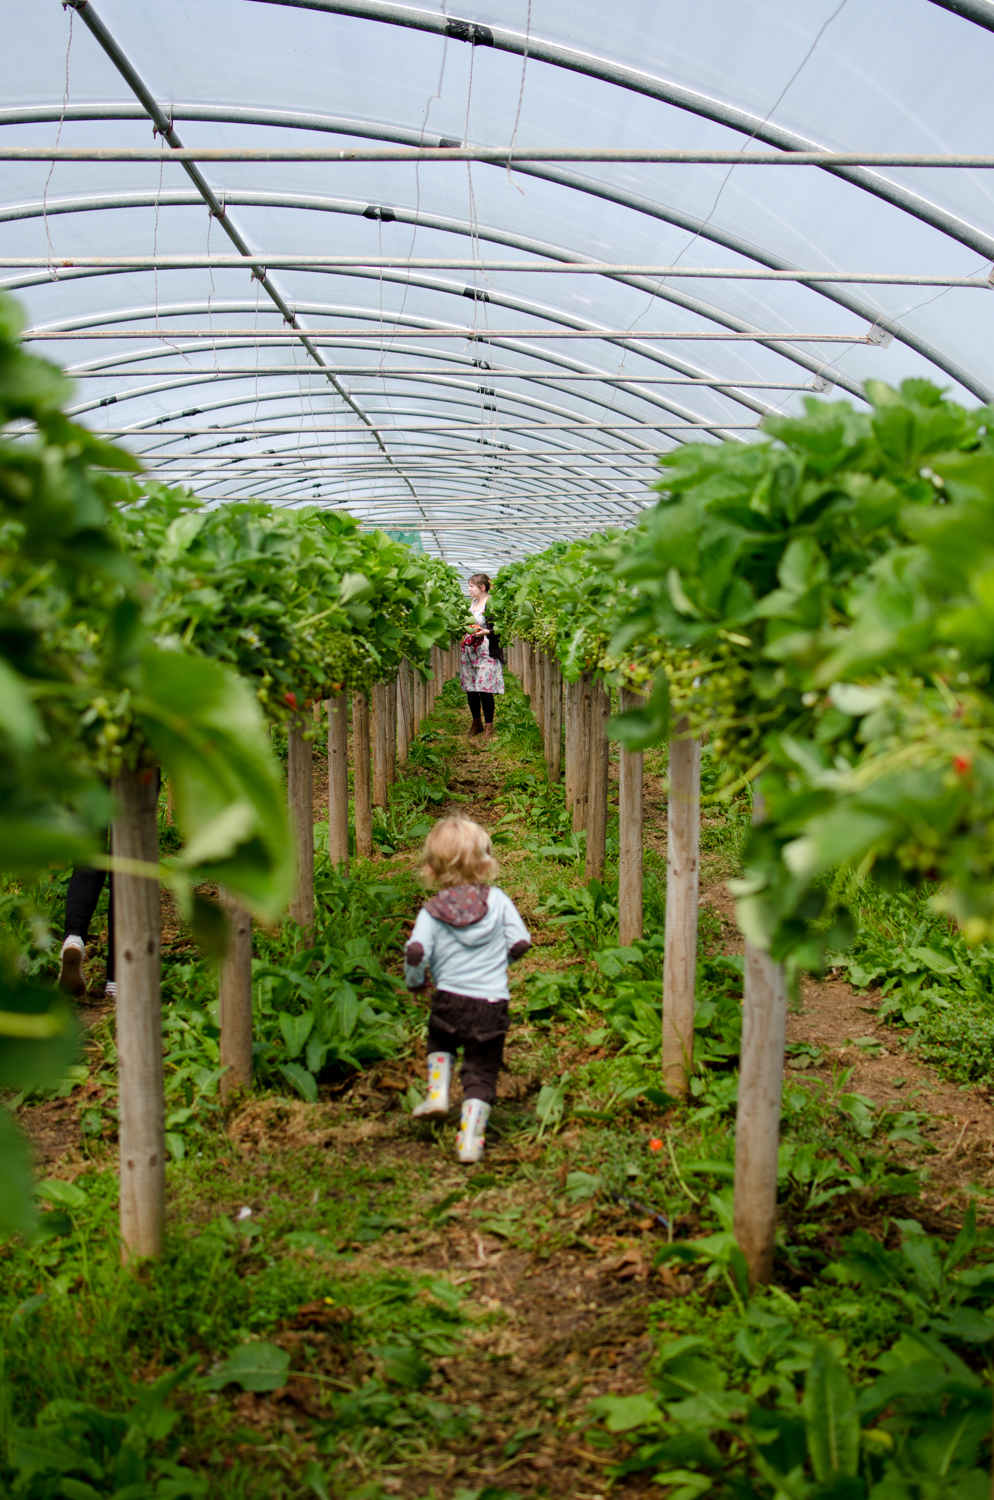 My son running towards my wife in the strawberry polytunnel